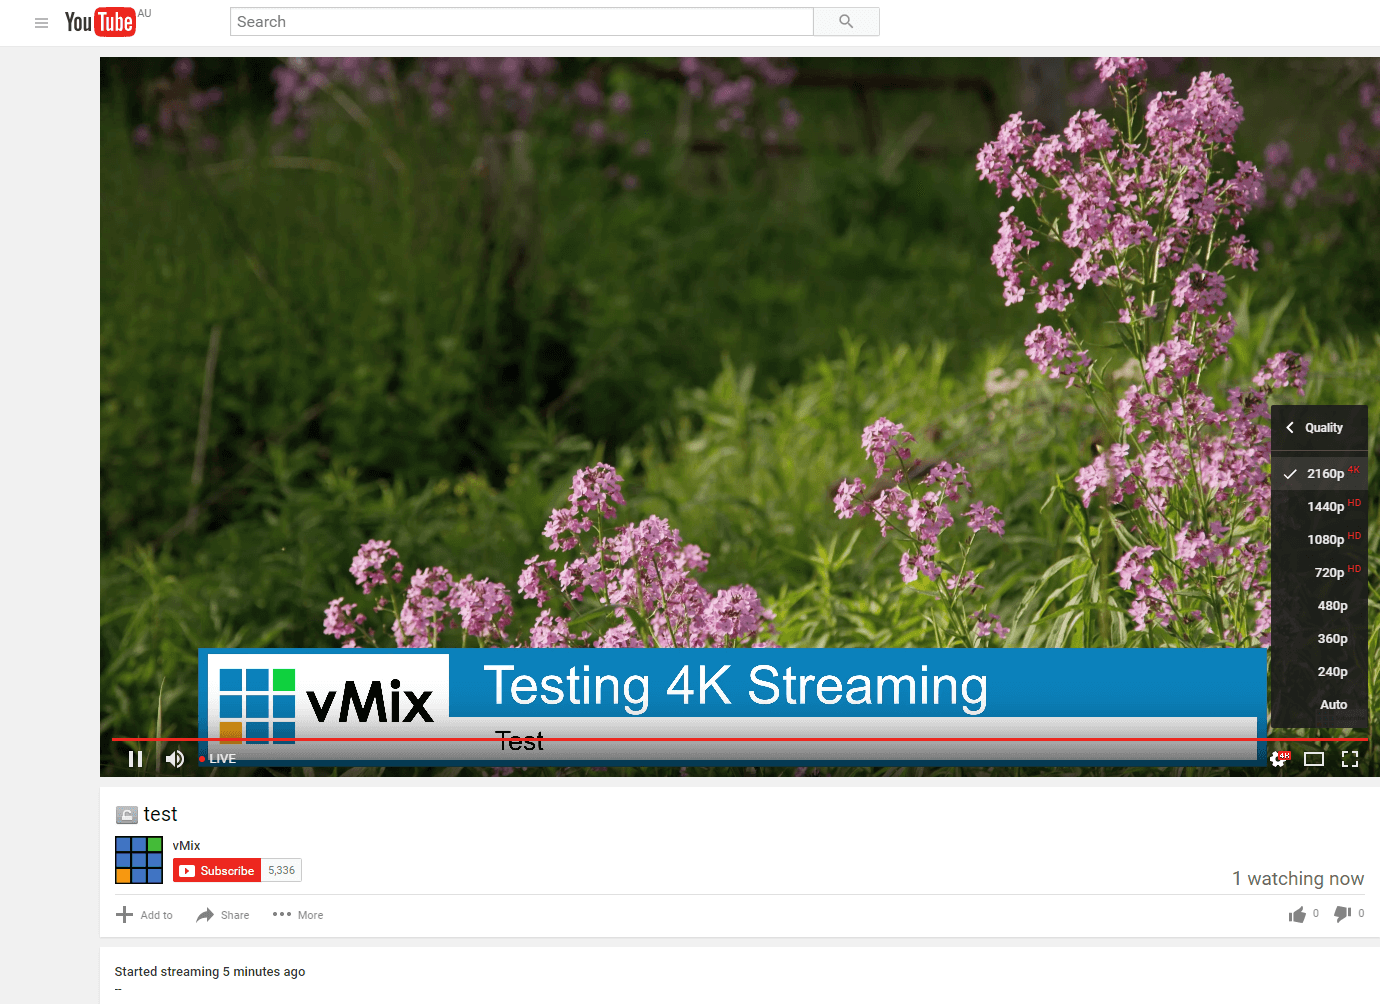 youtube-4k-live-stream-vMix